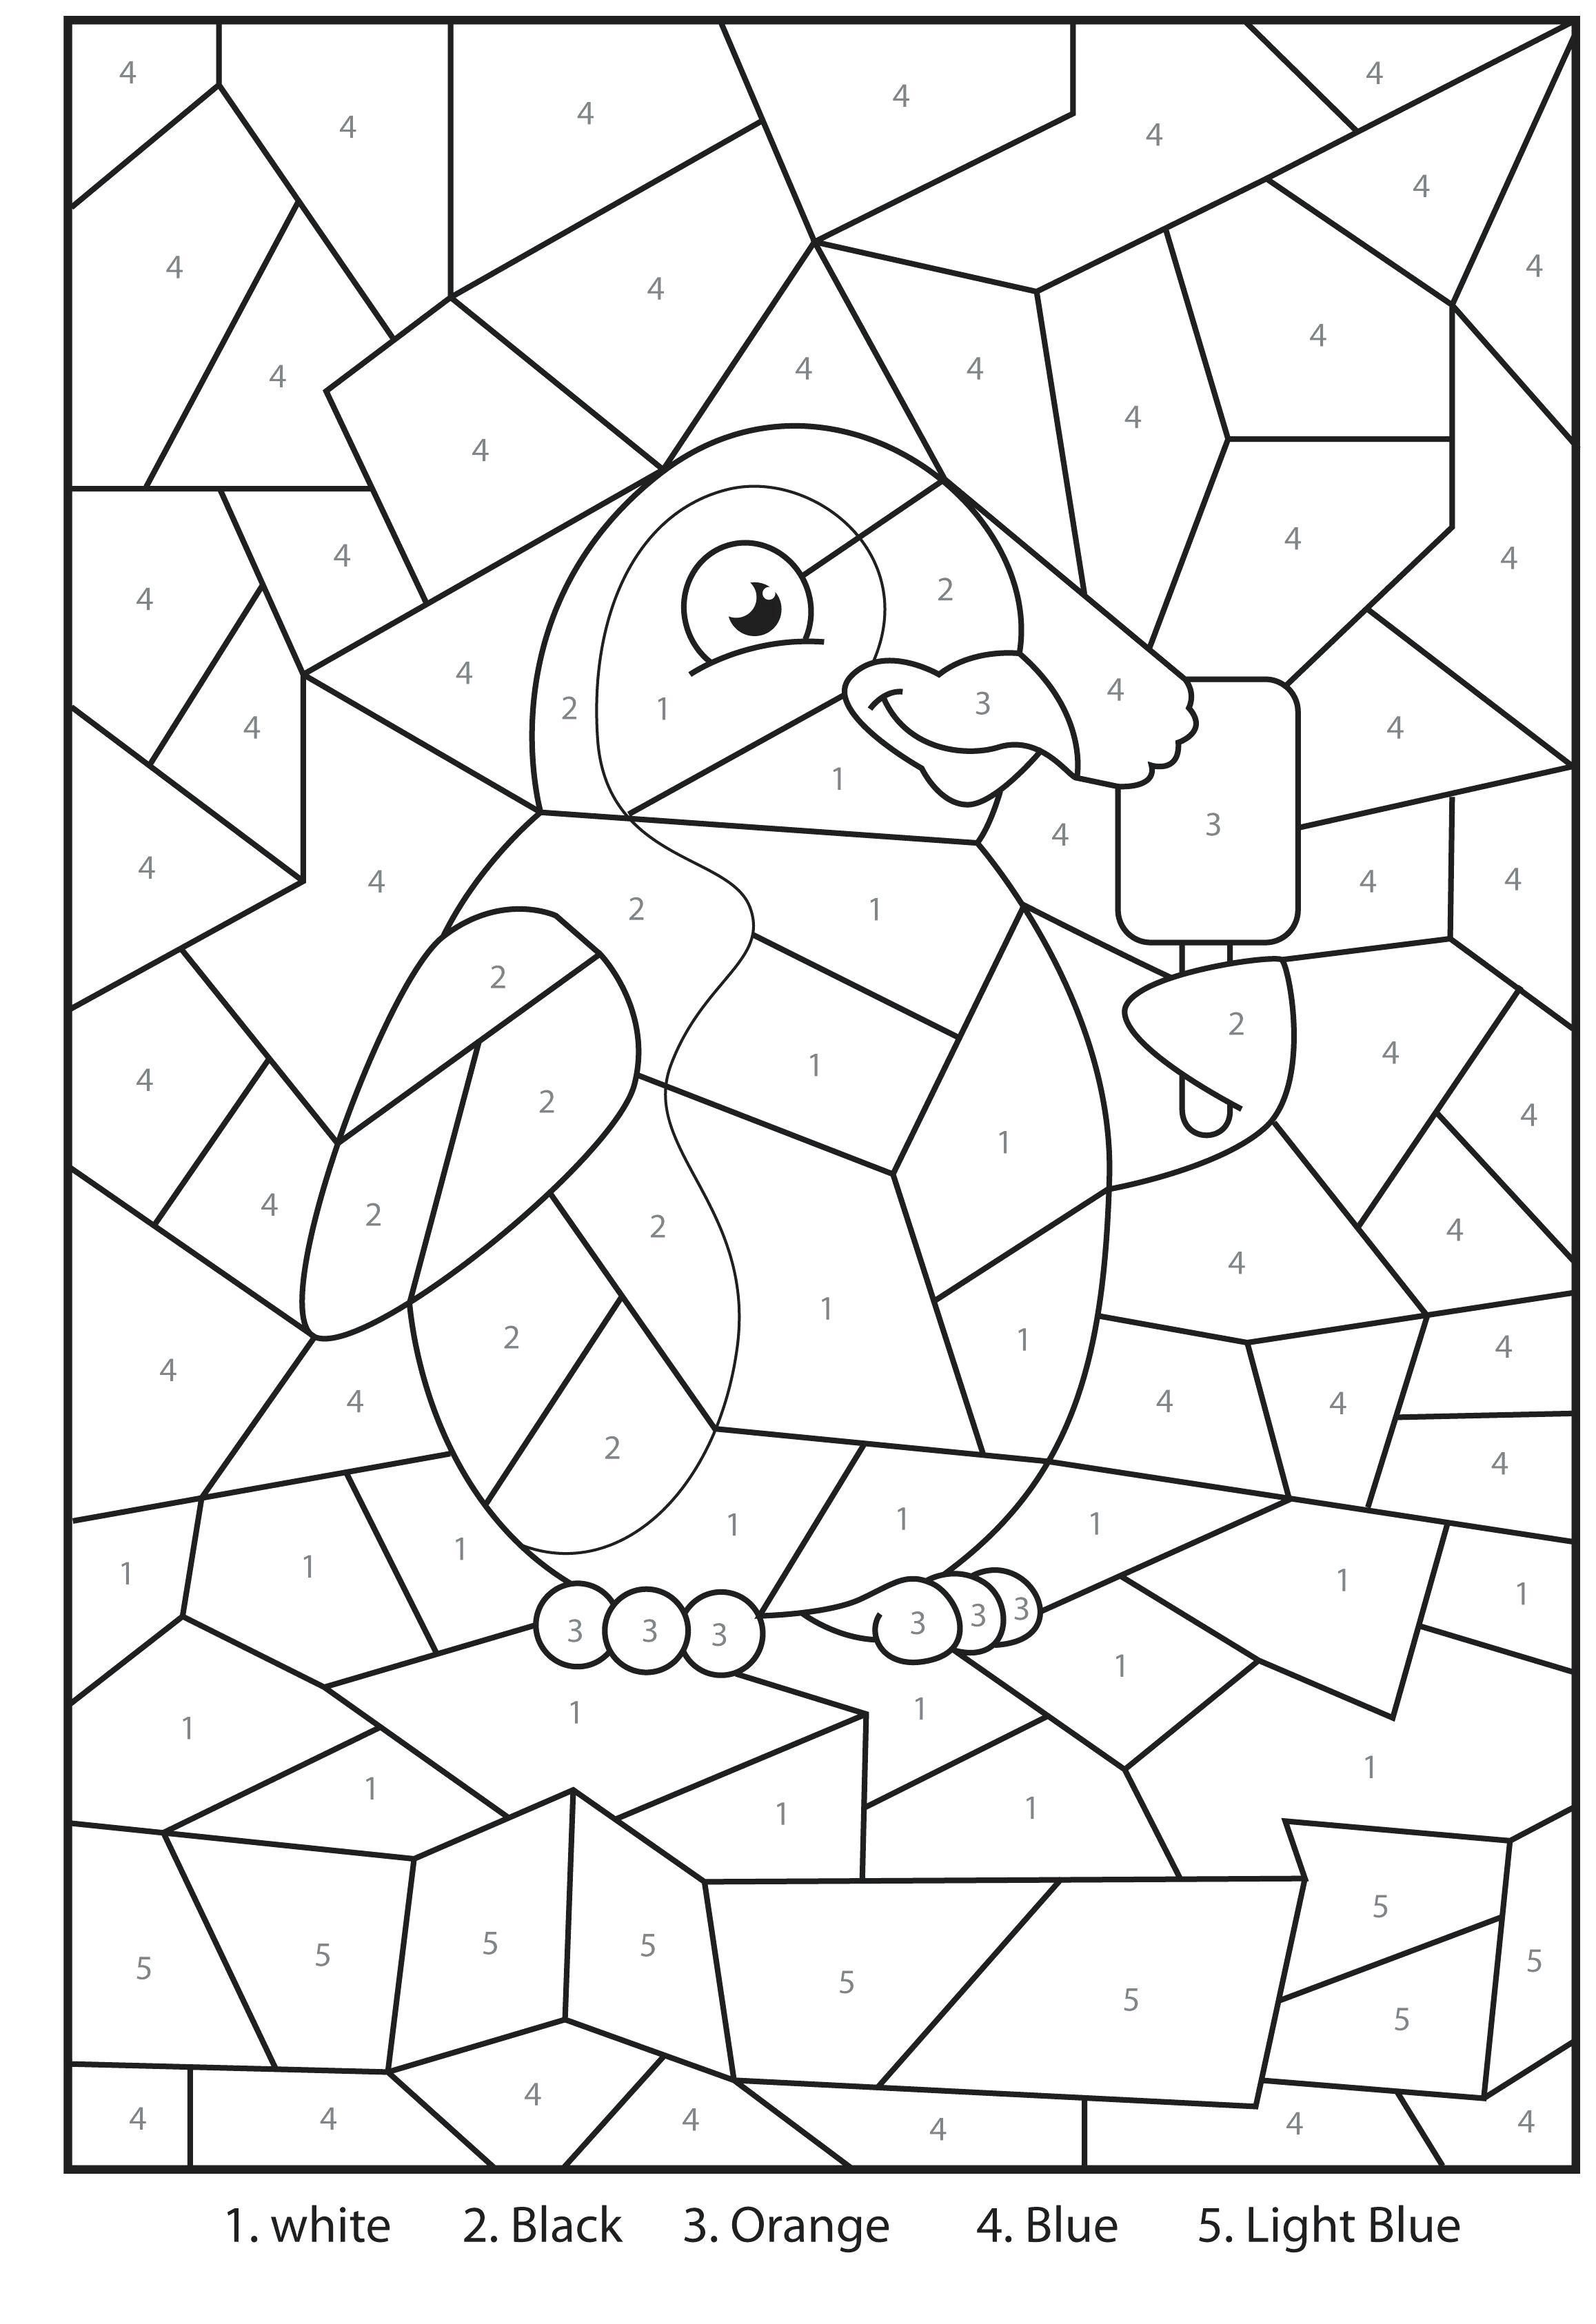 Printable Colouring Pages For 2 Year Olds 2 Preschool Activity Sheets Numbers For Kids Color By Number Printable